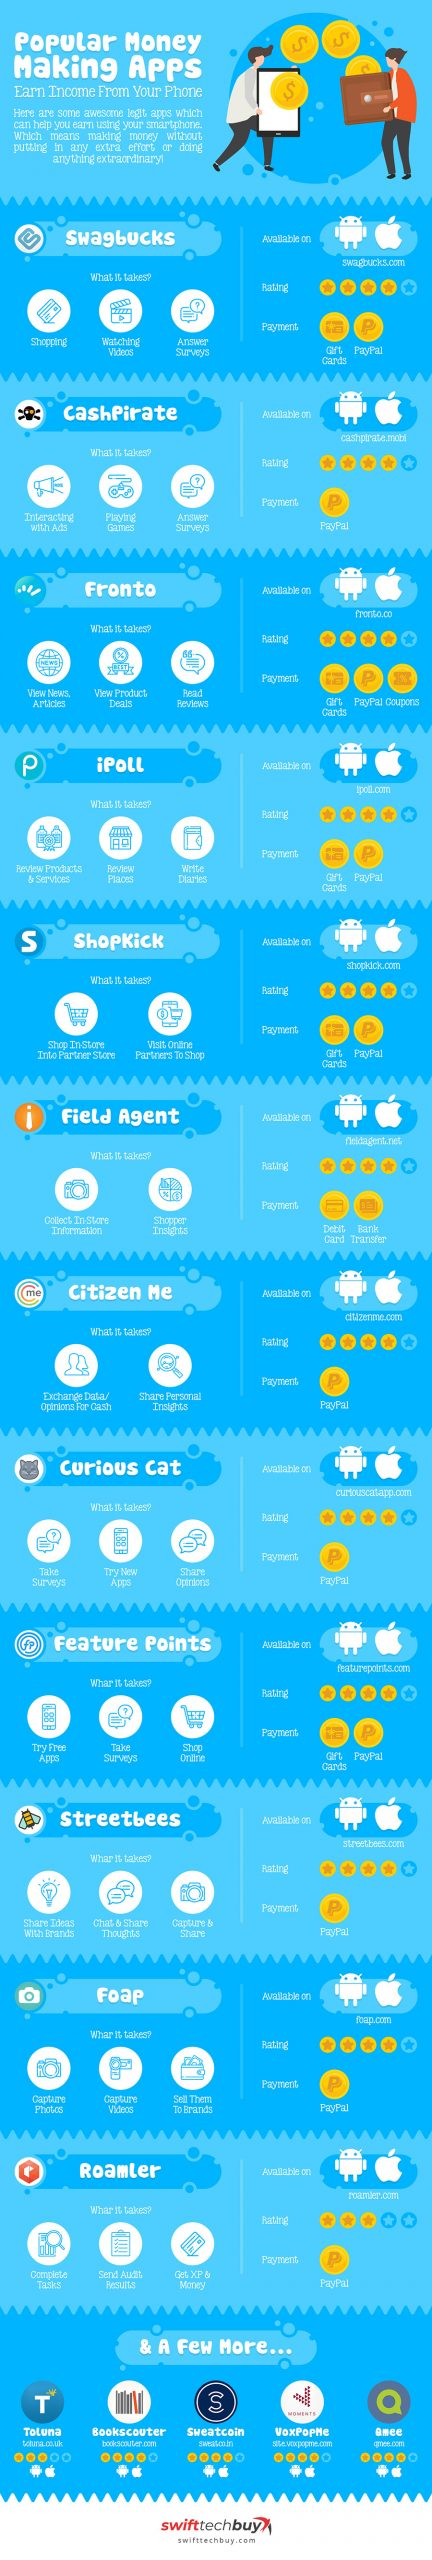 Money making apps [Infographic]